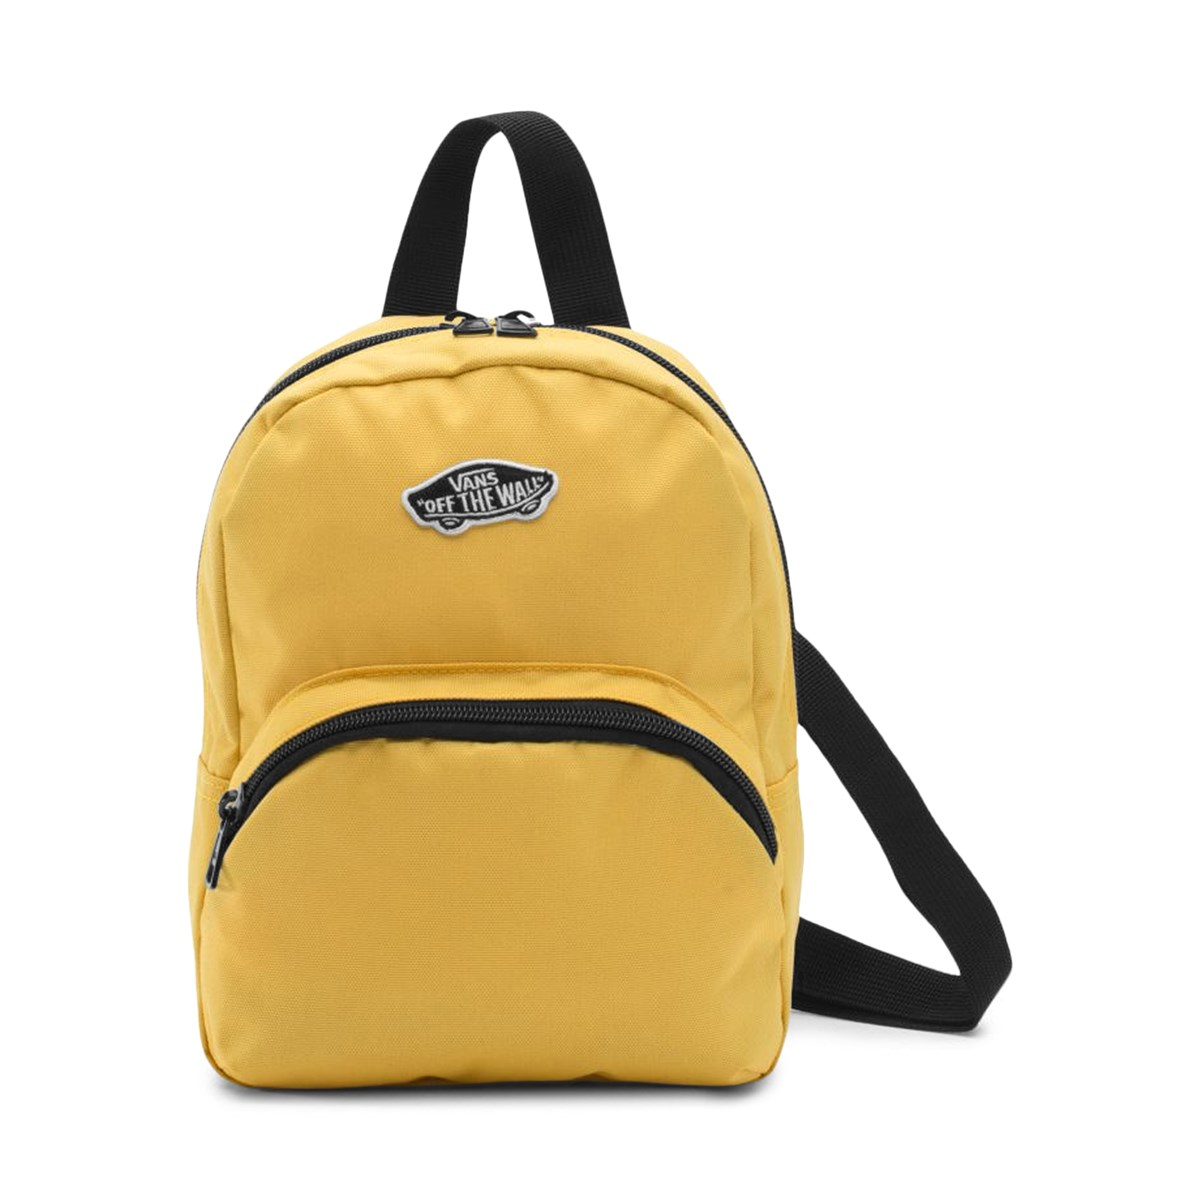 Got This Mini Backpack in Yellow